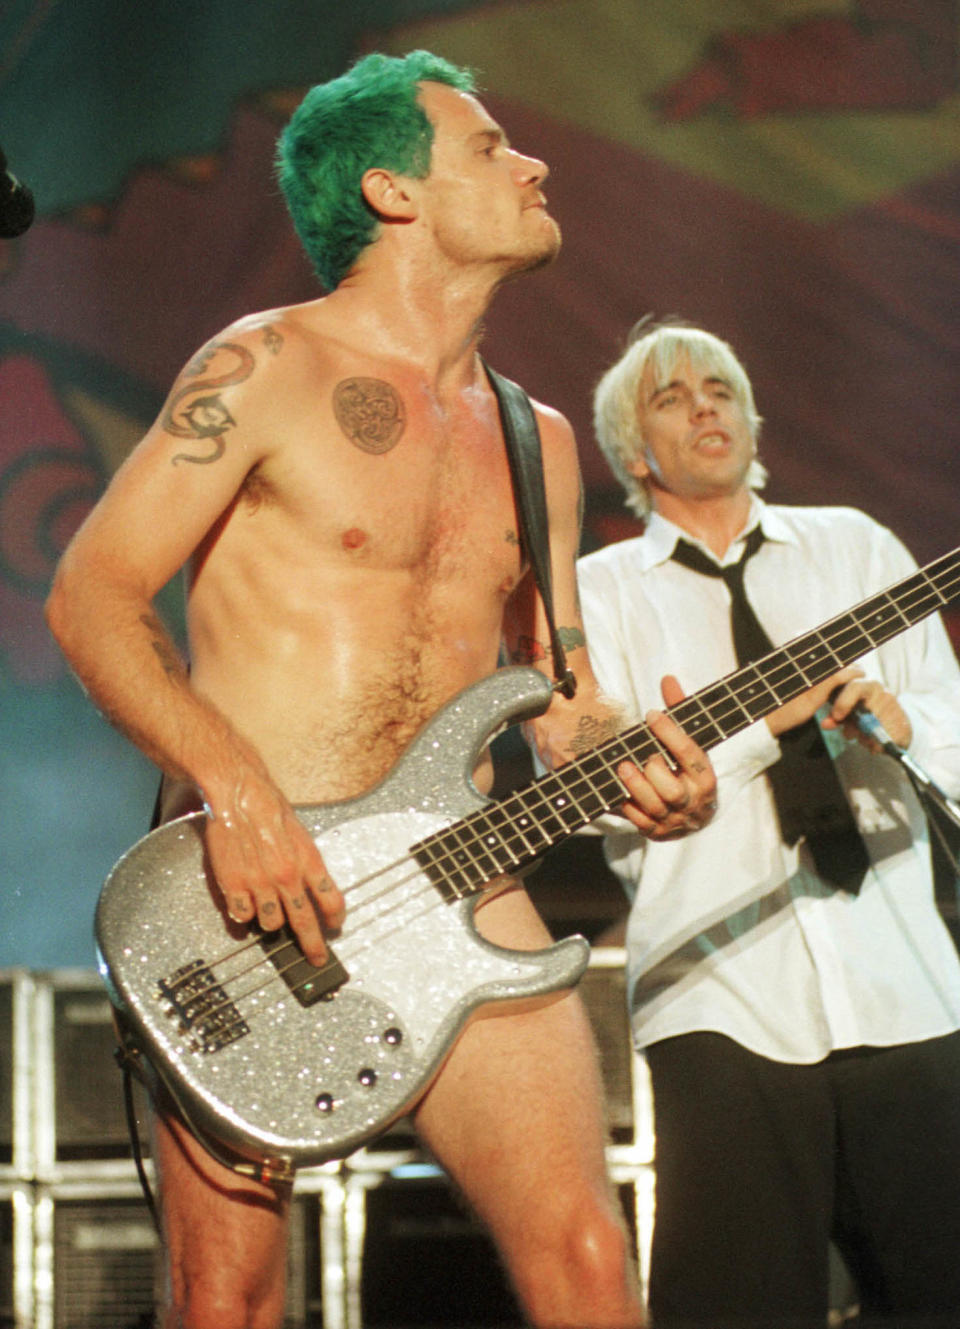 Red Hot Chili Peppers' Flea and Anthony Kiedis at Woodstock '99.  (Photo: Joe Traver/Getty Images)